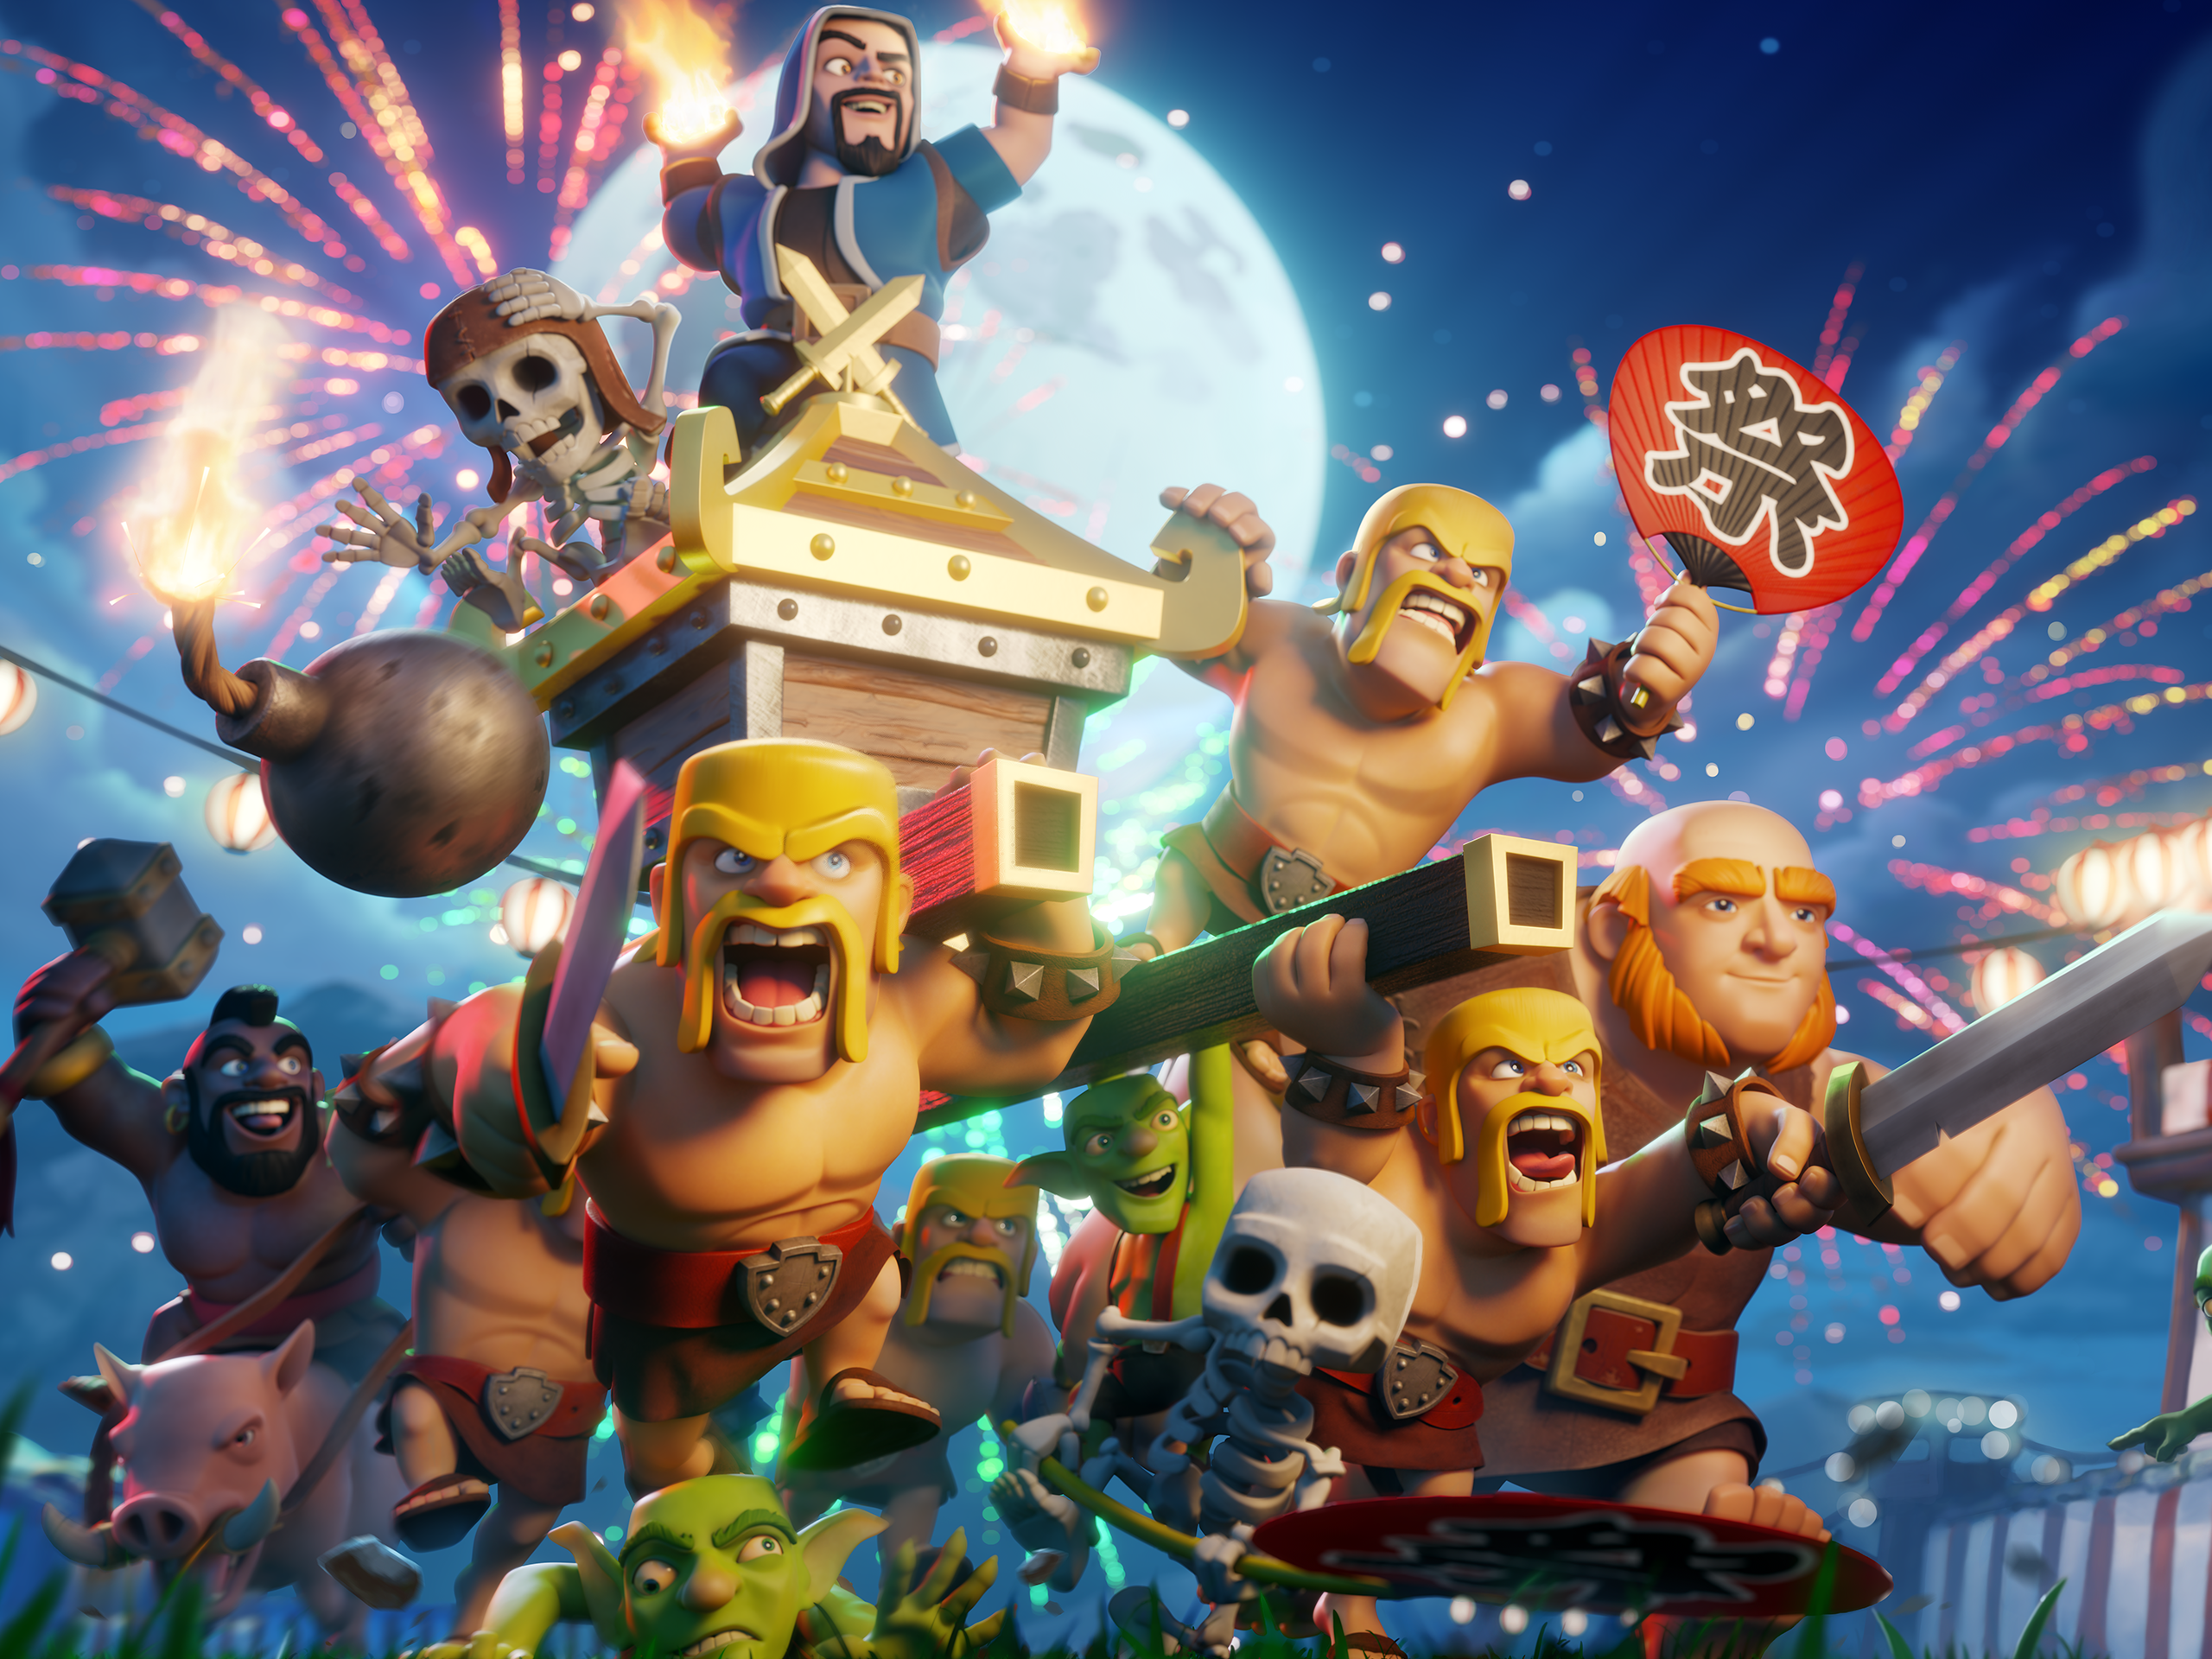 Wallpaper Especial de 5 anos de Clash of Clans - Clash of ...